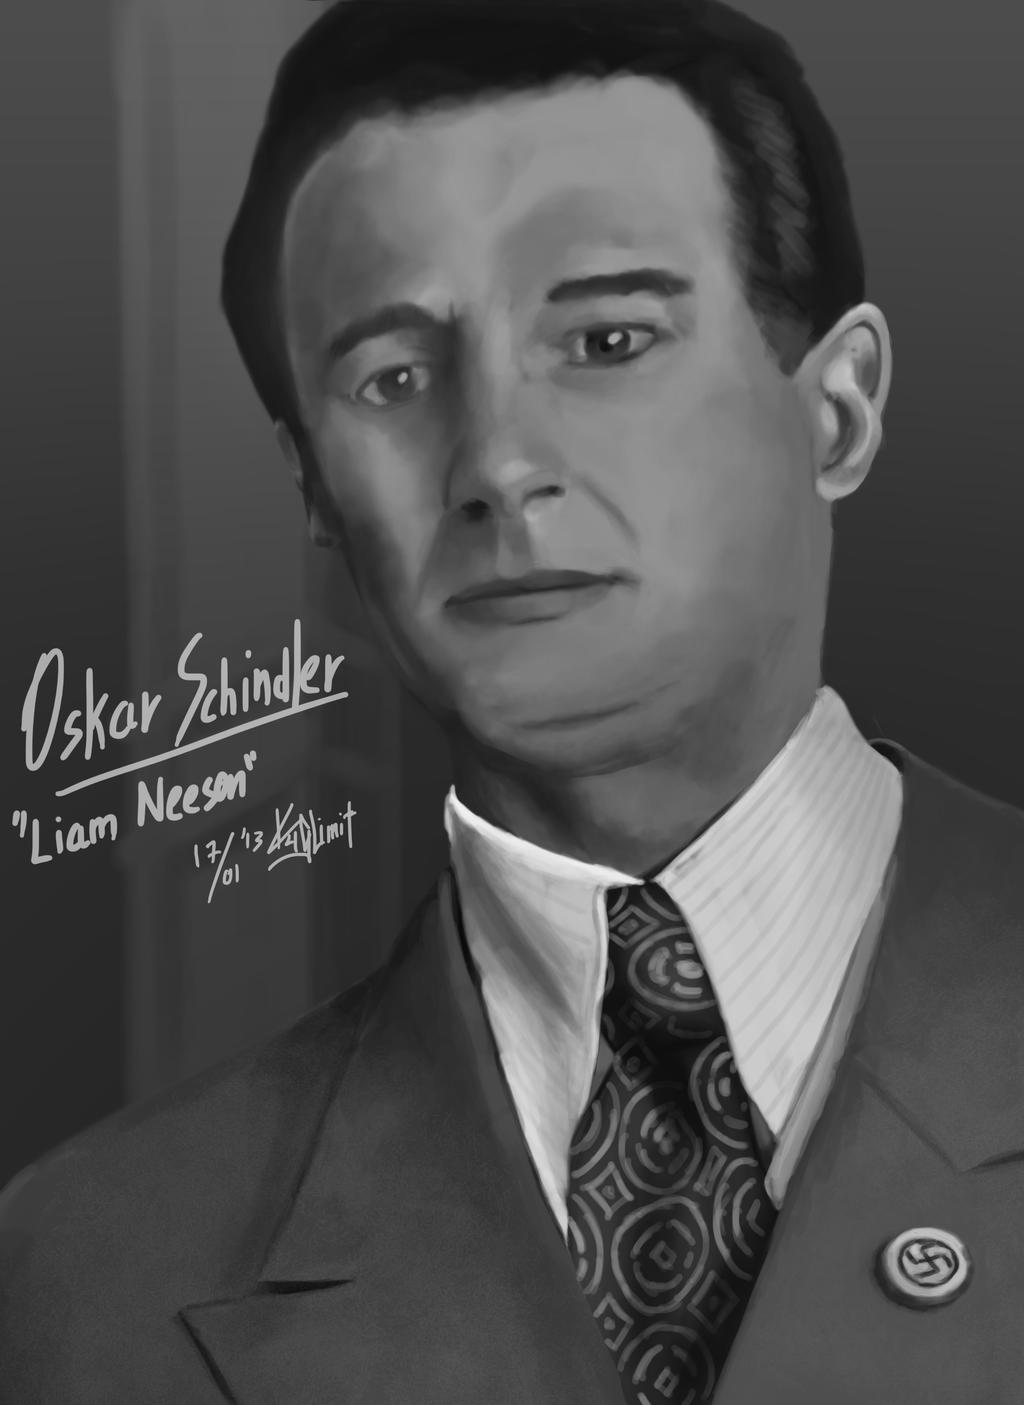 oskar schindler Oskar schindler a gambling, womanizing, war profiteer who was a member of the nazi party hardly seems like someone who would be interested in the plight of the european jews during the holocaust, but oskar schindler helped save 1,200 jews from certain death 20 born into a middle-class catholic family, schindler was expected to take.